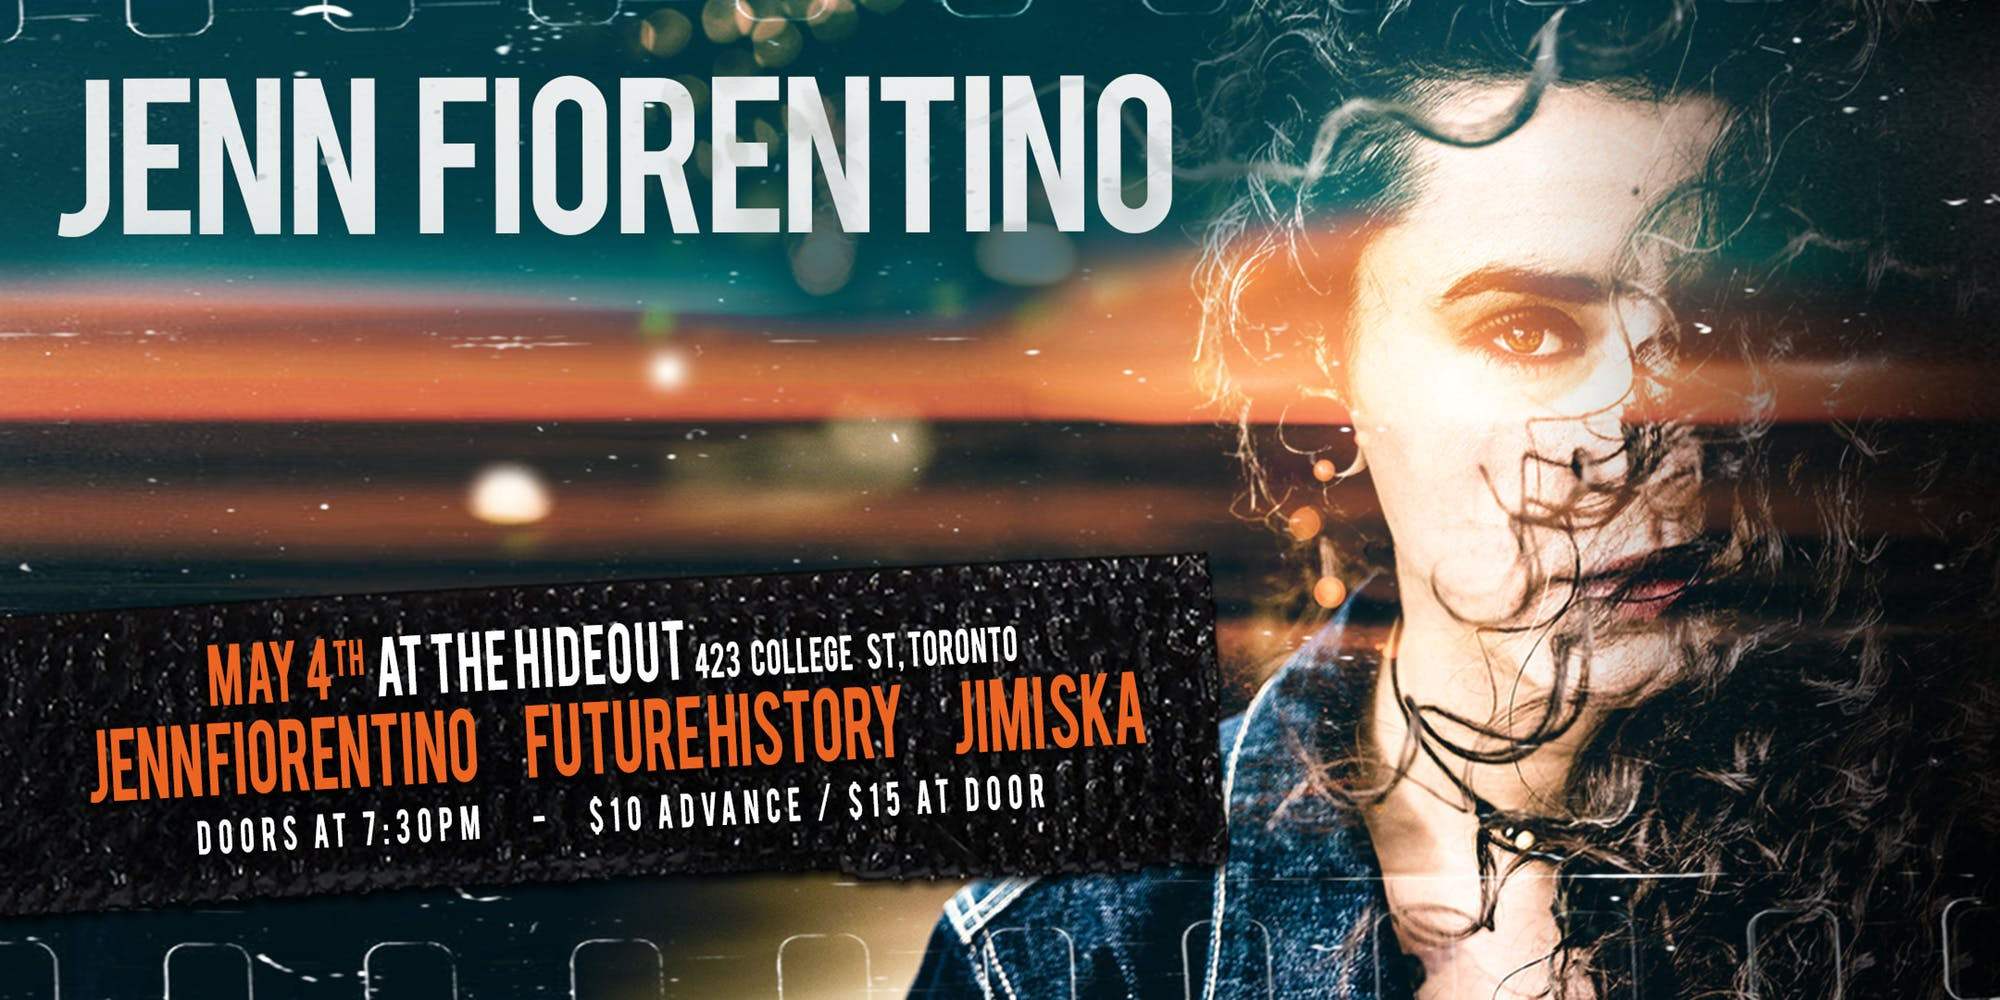 Join Jenn Fiorentino and her special guest performers, as she releases her brand-new album SURVIVE at The Hideout on Saturday, May 4!  Jenn's supporting acts Jimi Ska and Future History will perform their amazing songs before Jenn and her full-band introduces SURVIVE to the world in the heart of downtown Toronto.   Be sure not to miss celebrating this unforgettable evening with Jimi Ska, Future History and Jenn Fiorentino, along with all of our friends and family!  COME HANG OUT WITH JENN FIORENTINO!!!!!!!!!